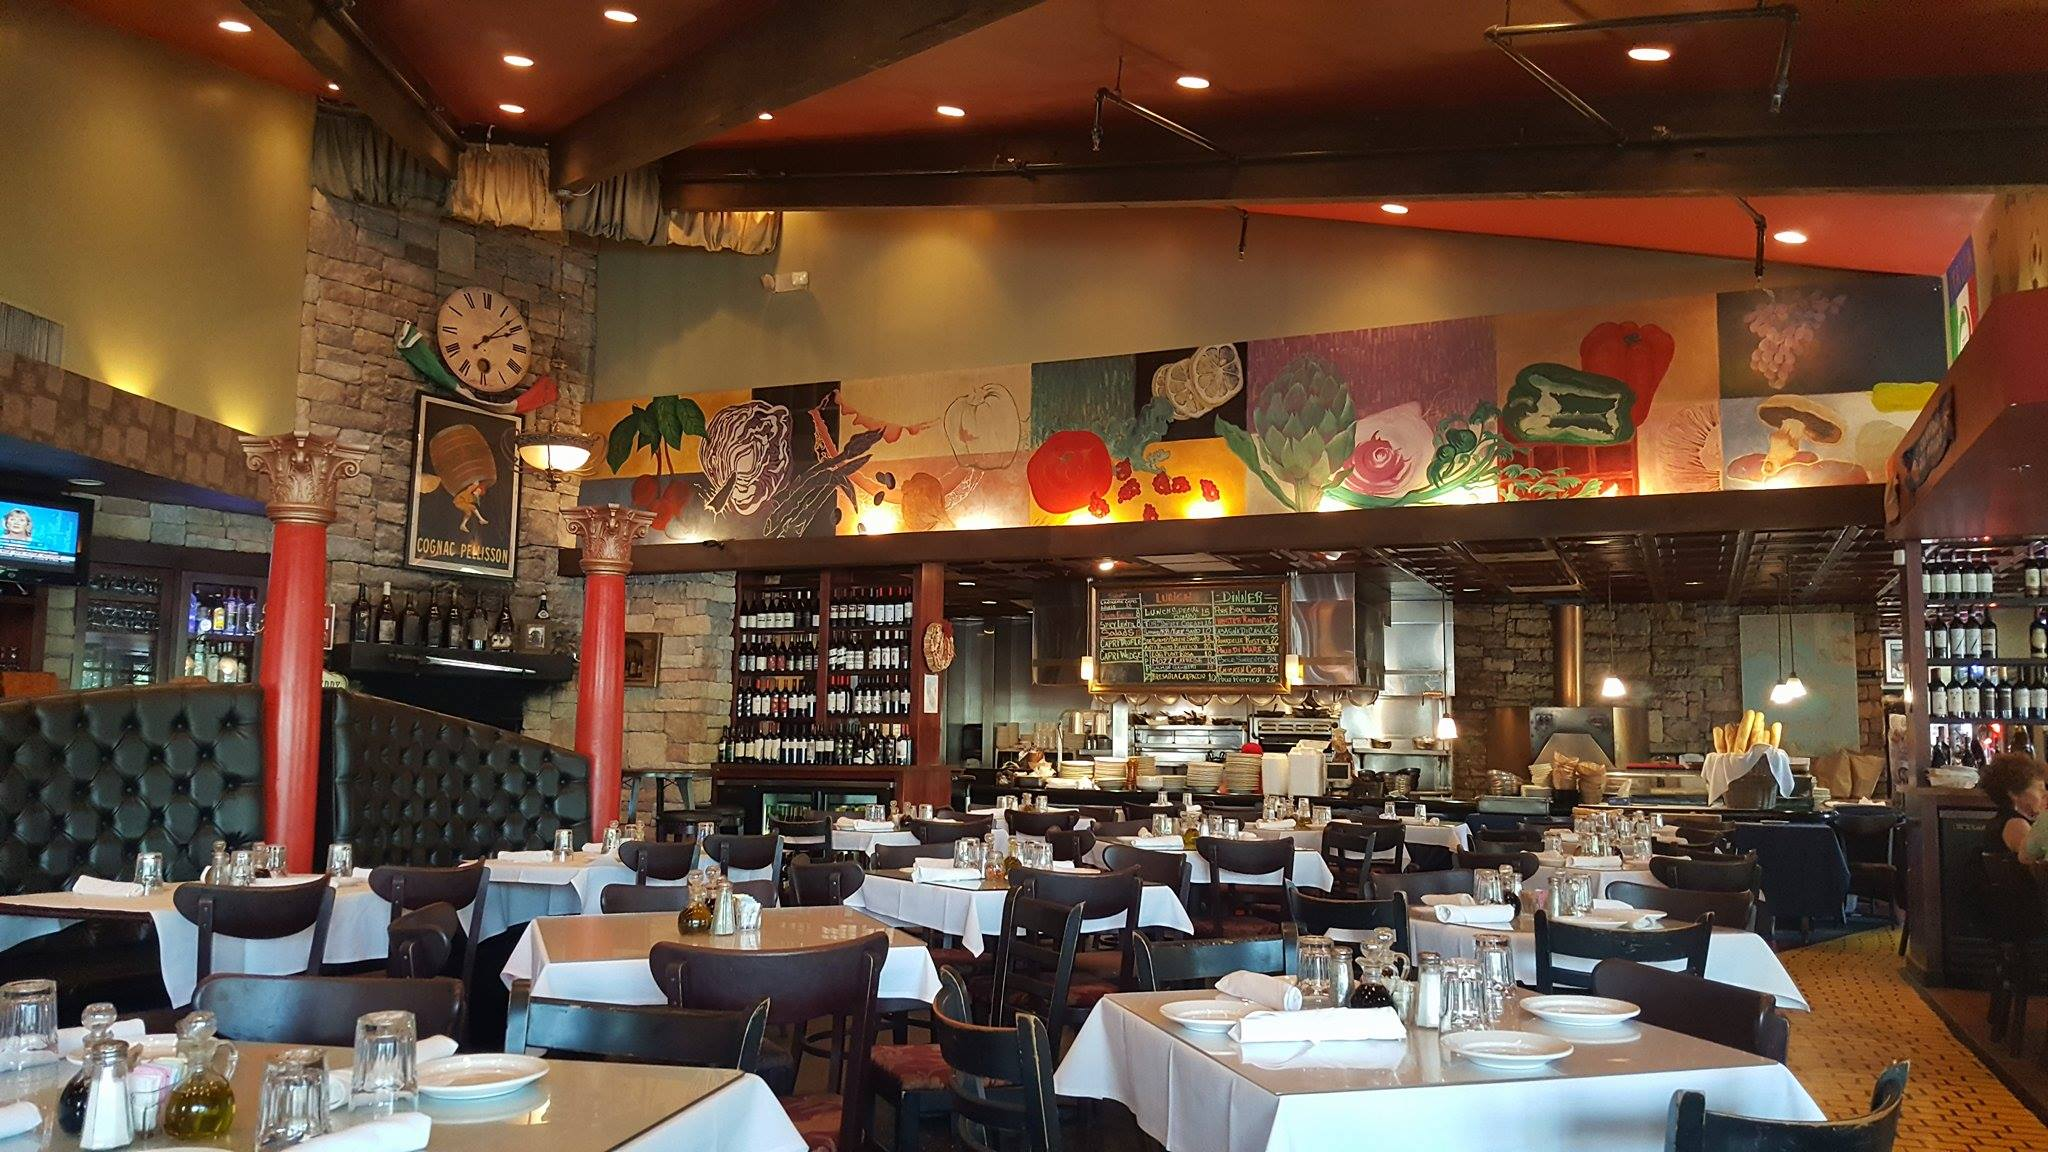 Piazza Gavi Tucson Italian Cuisine Welcome To Serving A Broad Range Of Old Fashioned Dishes In Cheerful Atmosphere